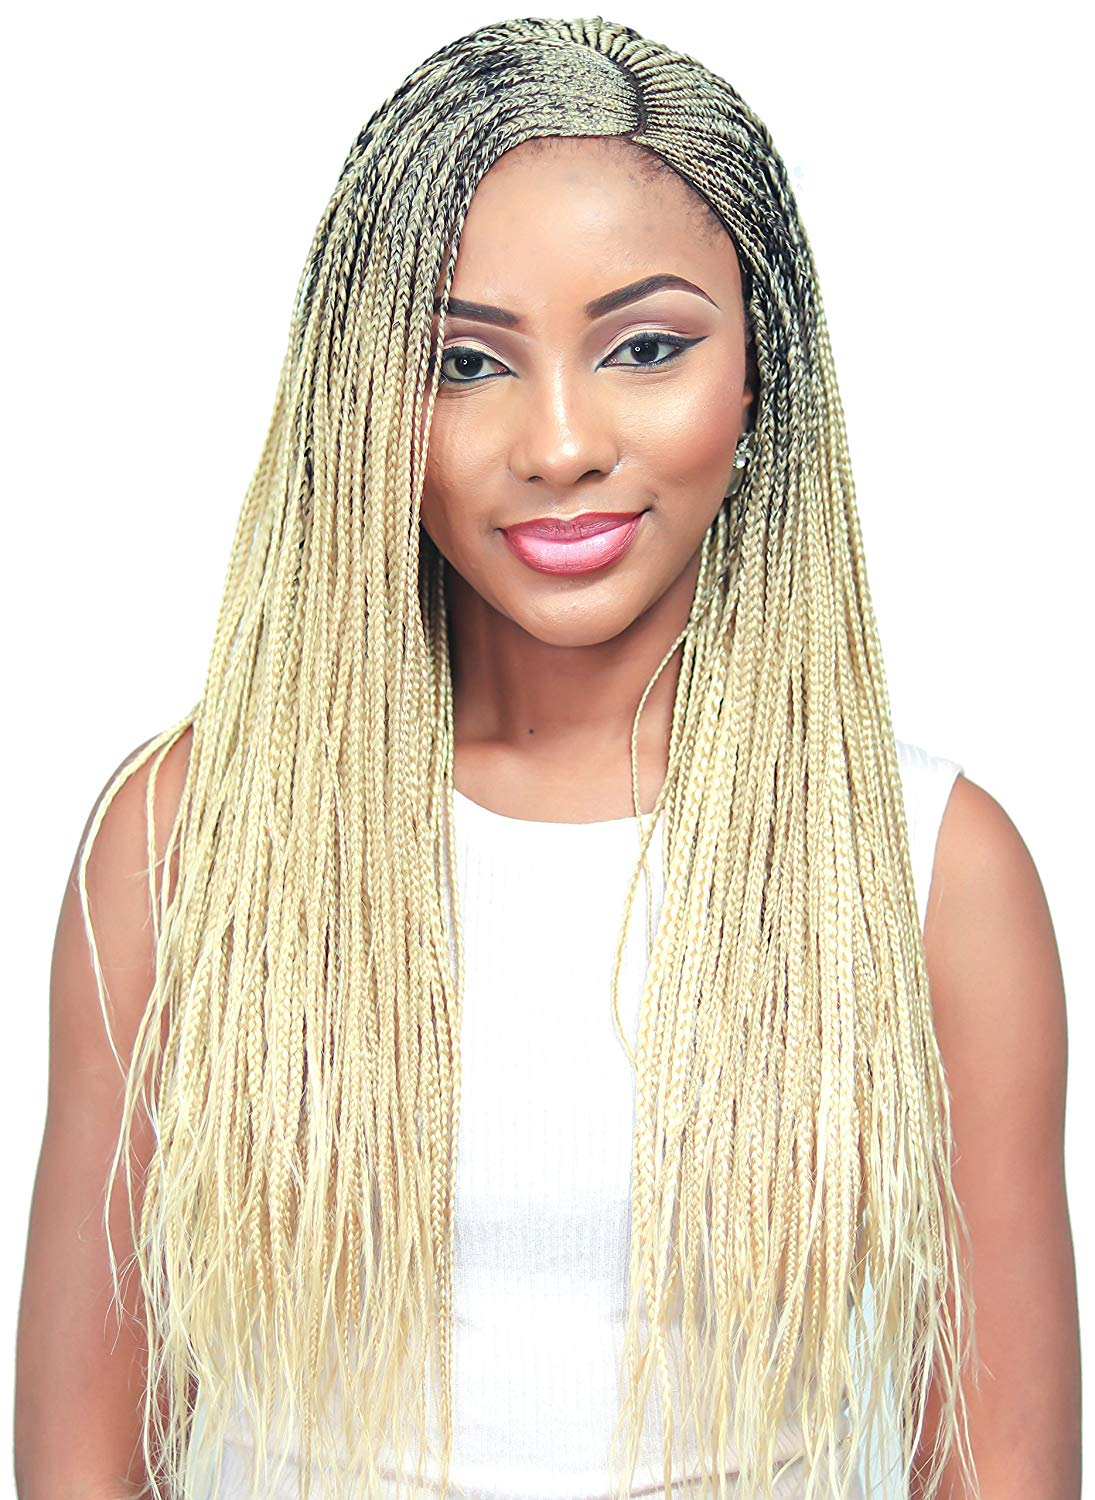 Lemonade Braids Blond Wig - Color 613